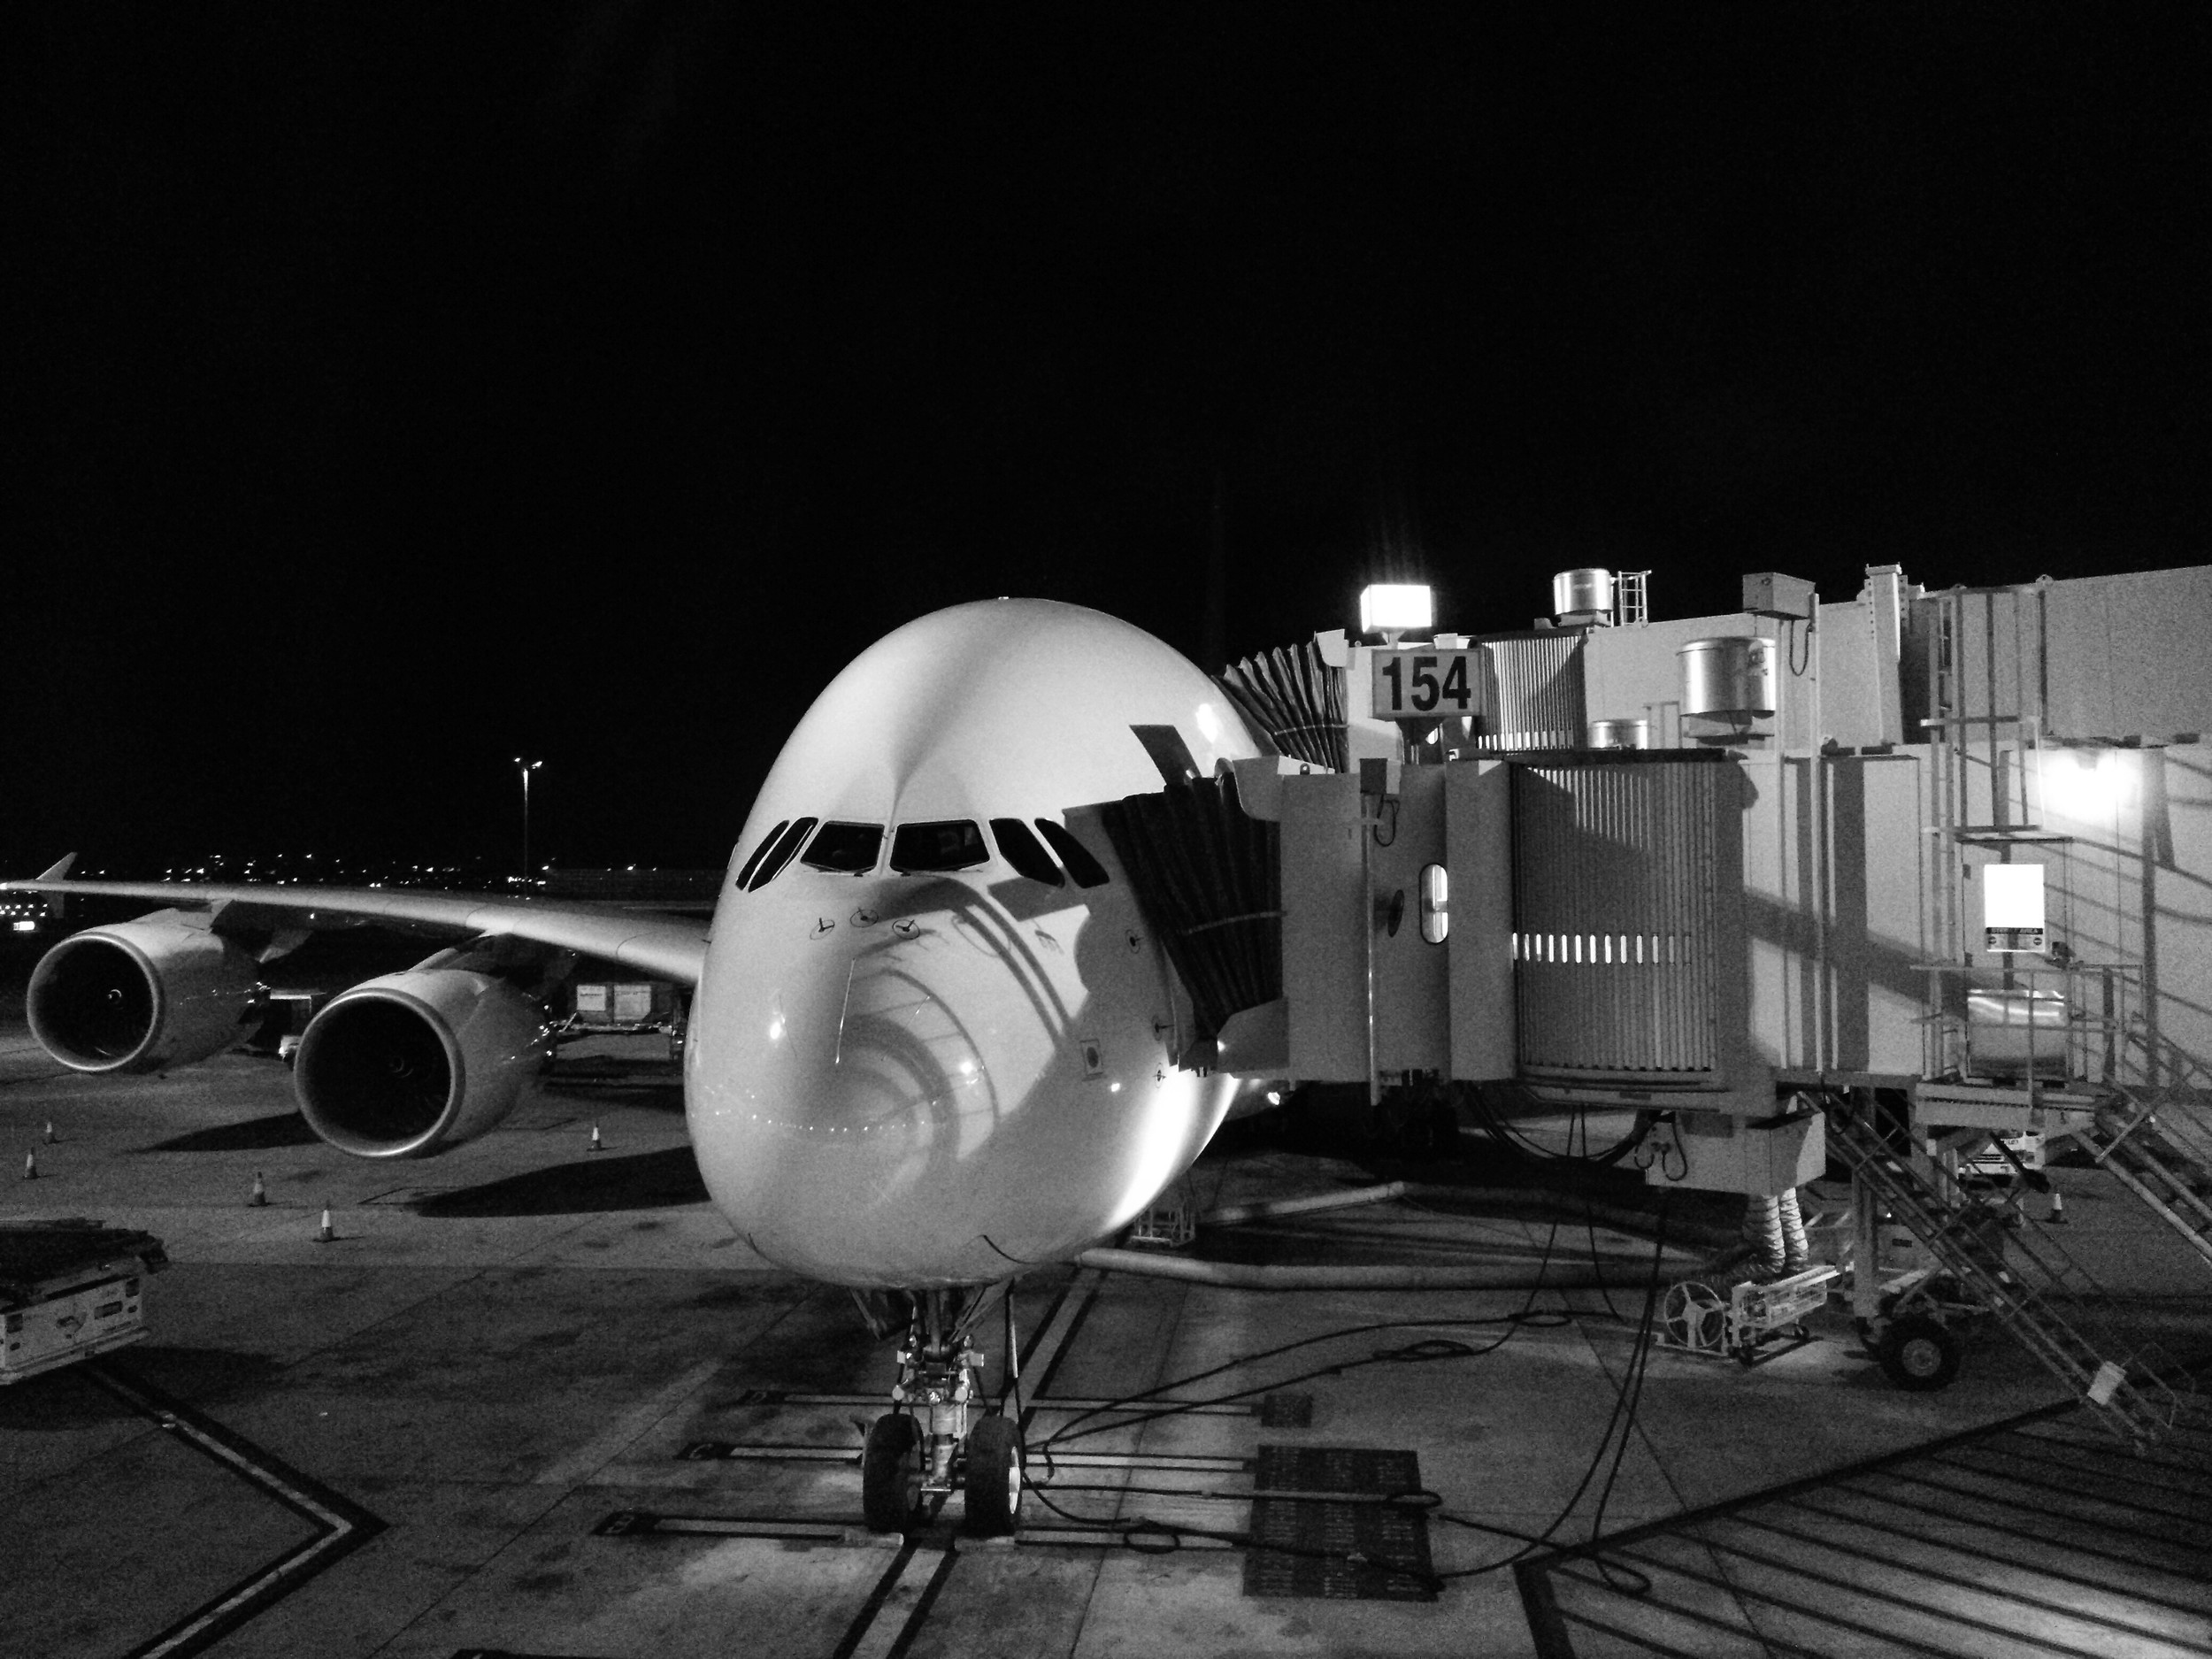 Airbus A380 - My ride from LAX to SYD, my first time on this big beauty